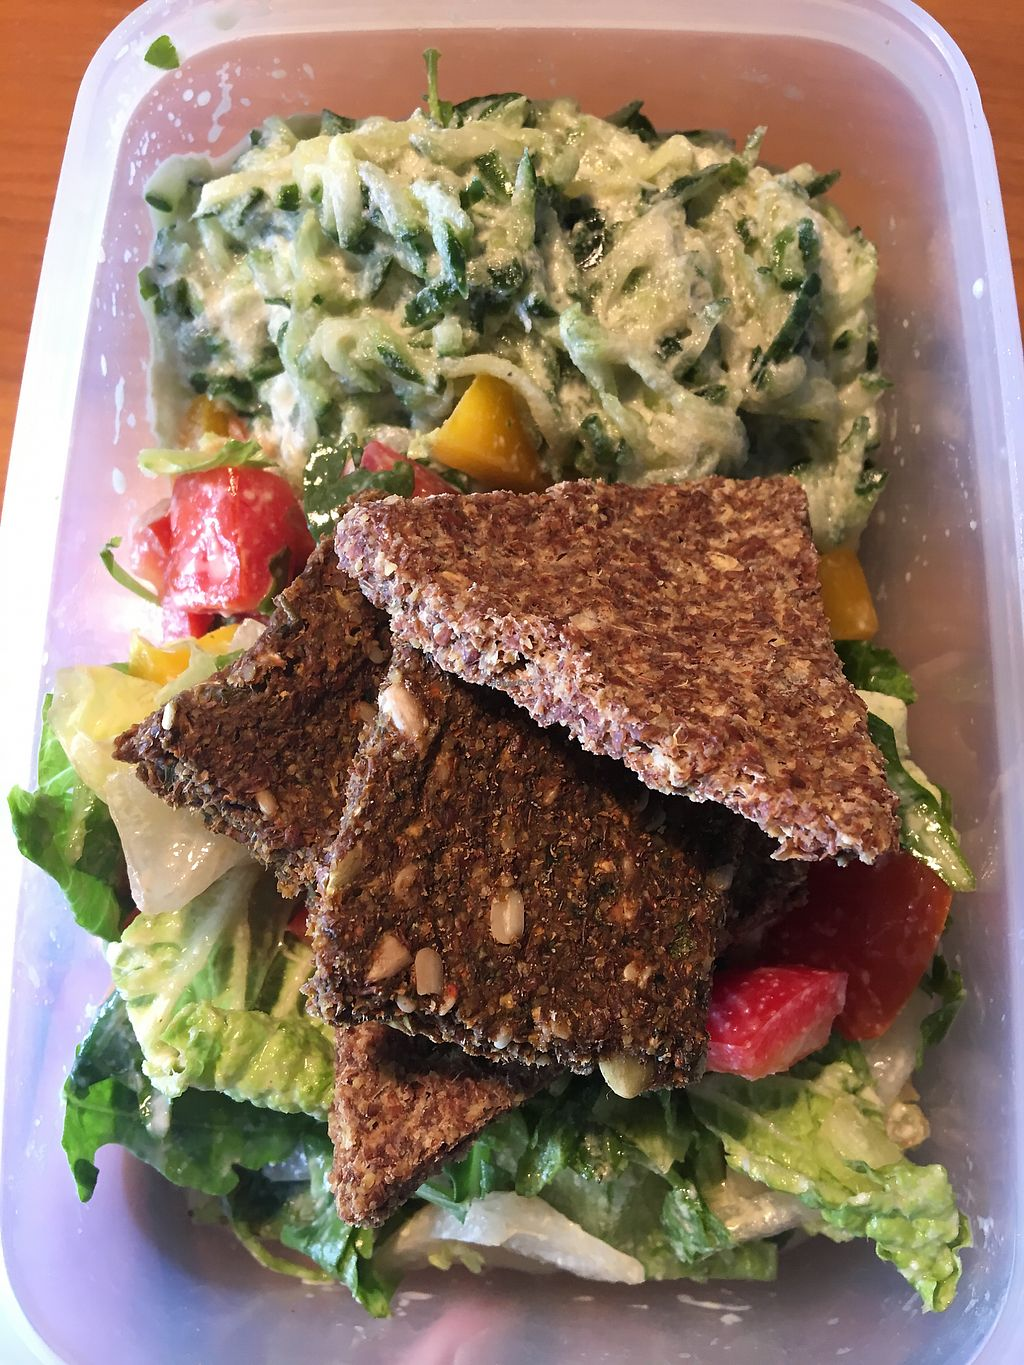 """Photo of Veggie Nyers  by <a href=""""/members/profile/tcsengusz"""">tcsengusz</a> <br/>You can take a mix of the two options they offer for lunch menu, with yummy crackers <br/> September 12, 2017  - <a href='/contact/abuse/image/69131/303712'>Report</a>"""